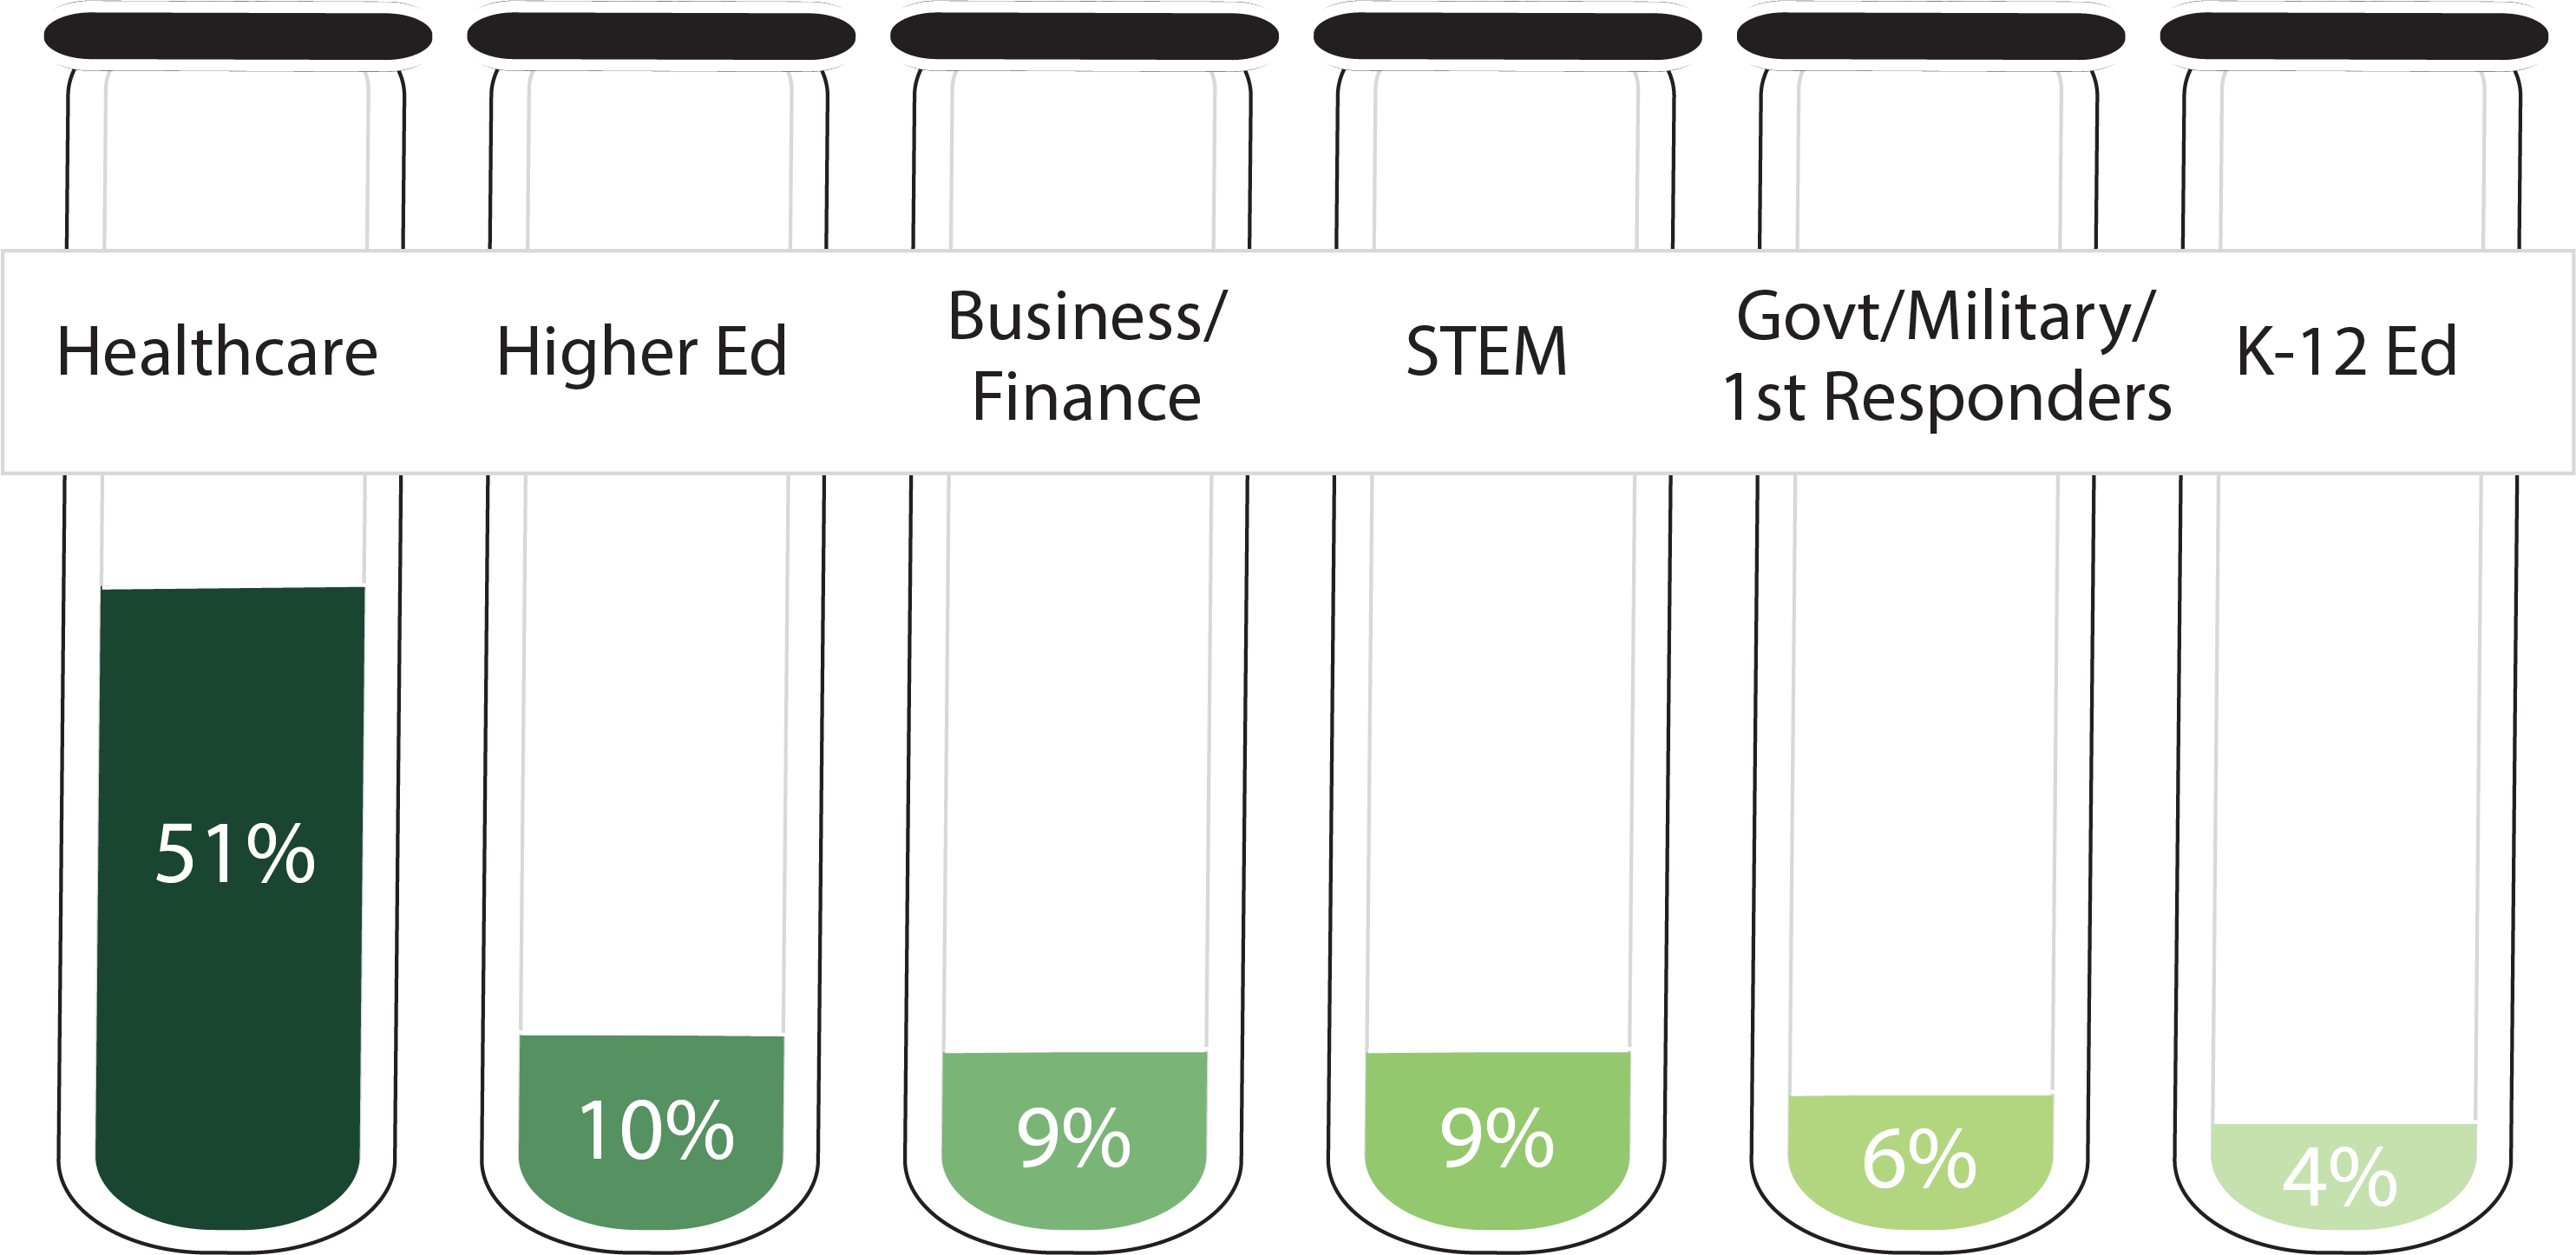 Bar graph illustration showing the percentage of biology graduates entering various employment fields. Healthcare: 51%; Higher Education: 10%; Business/Finance: 9%; STEM: 9%; Government/Military/First Responders: 6%; K-12 Education: 4%